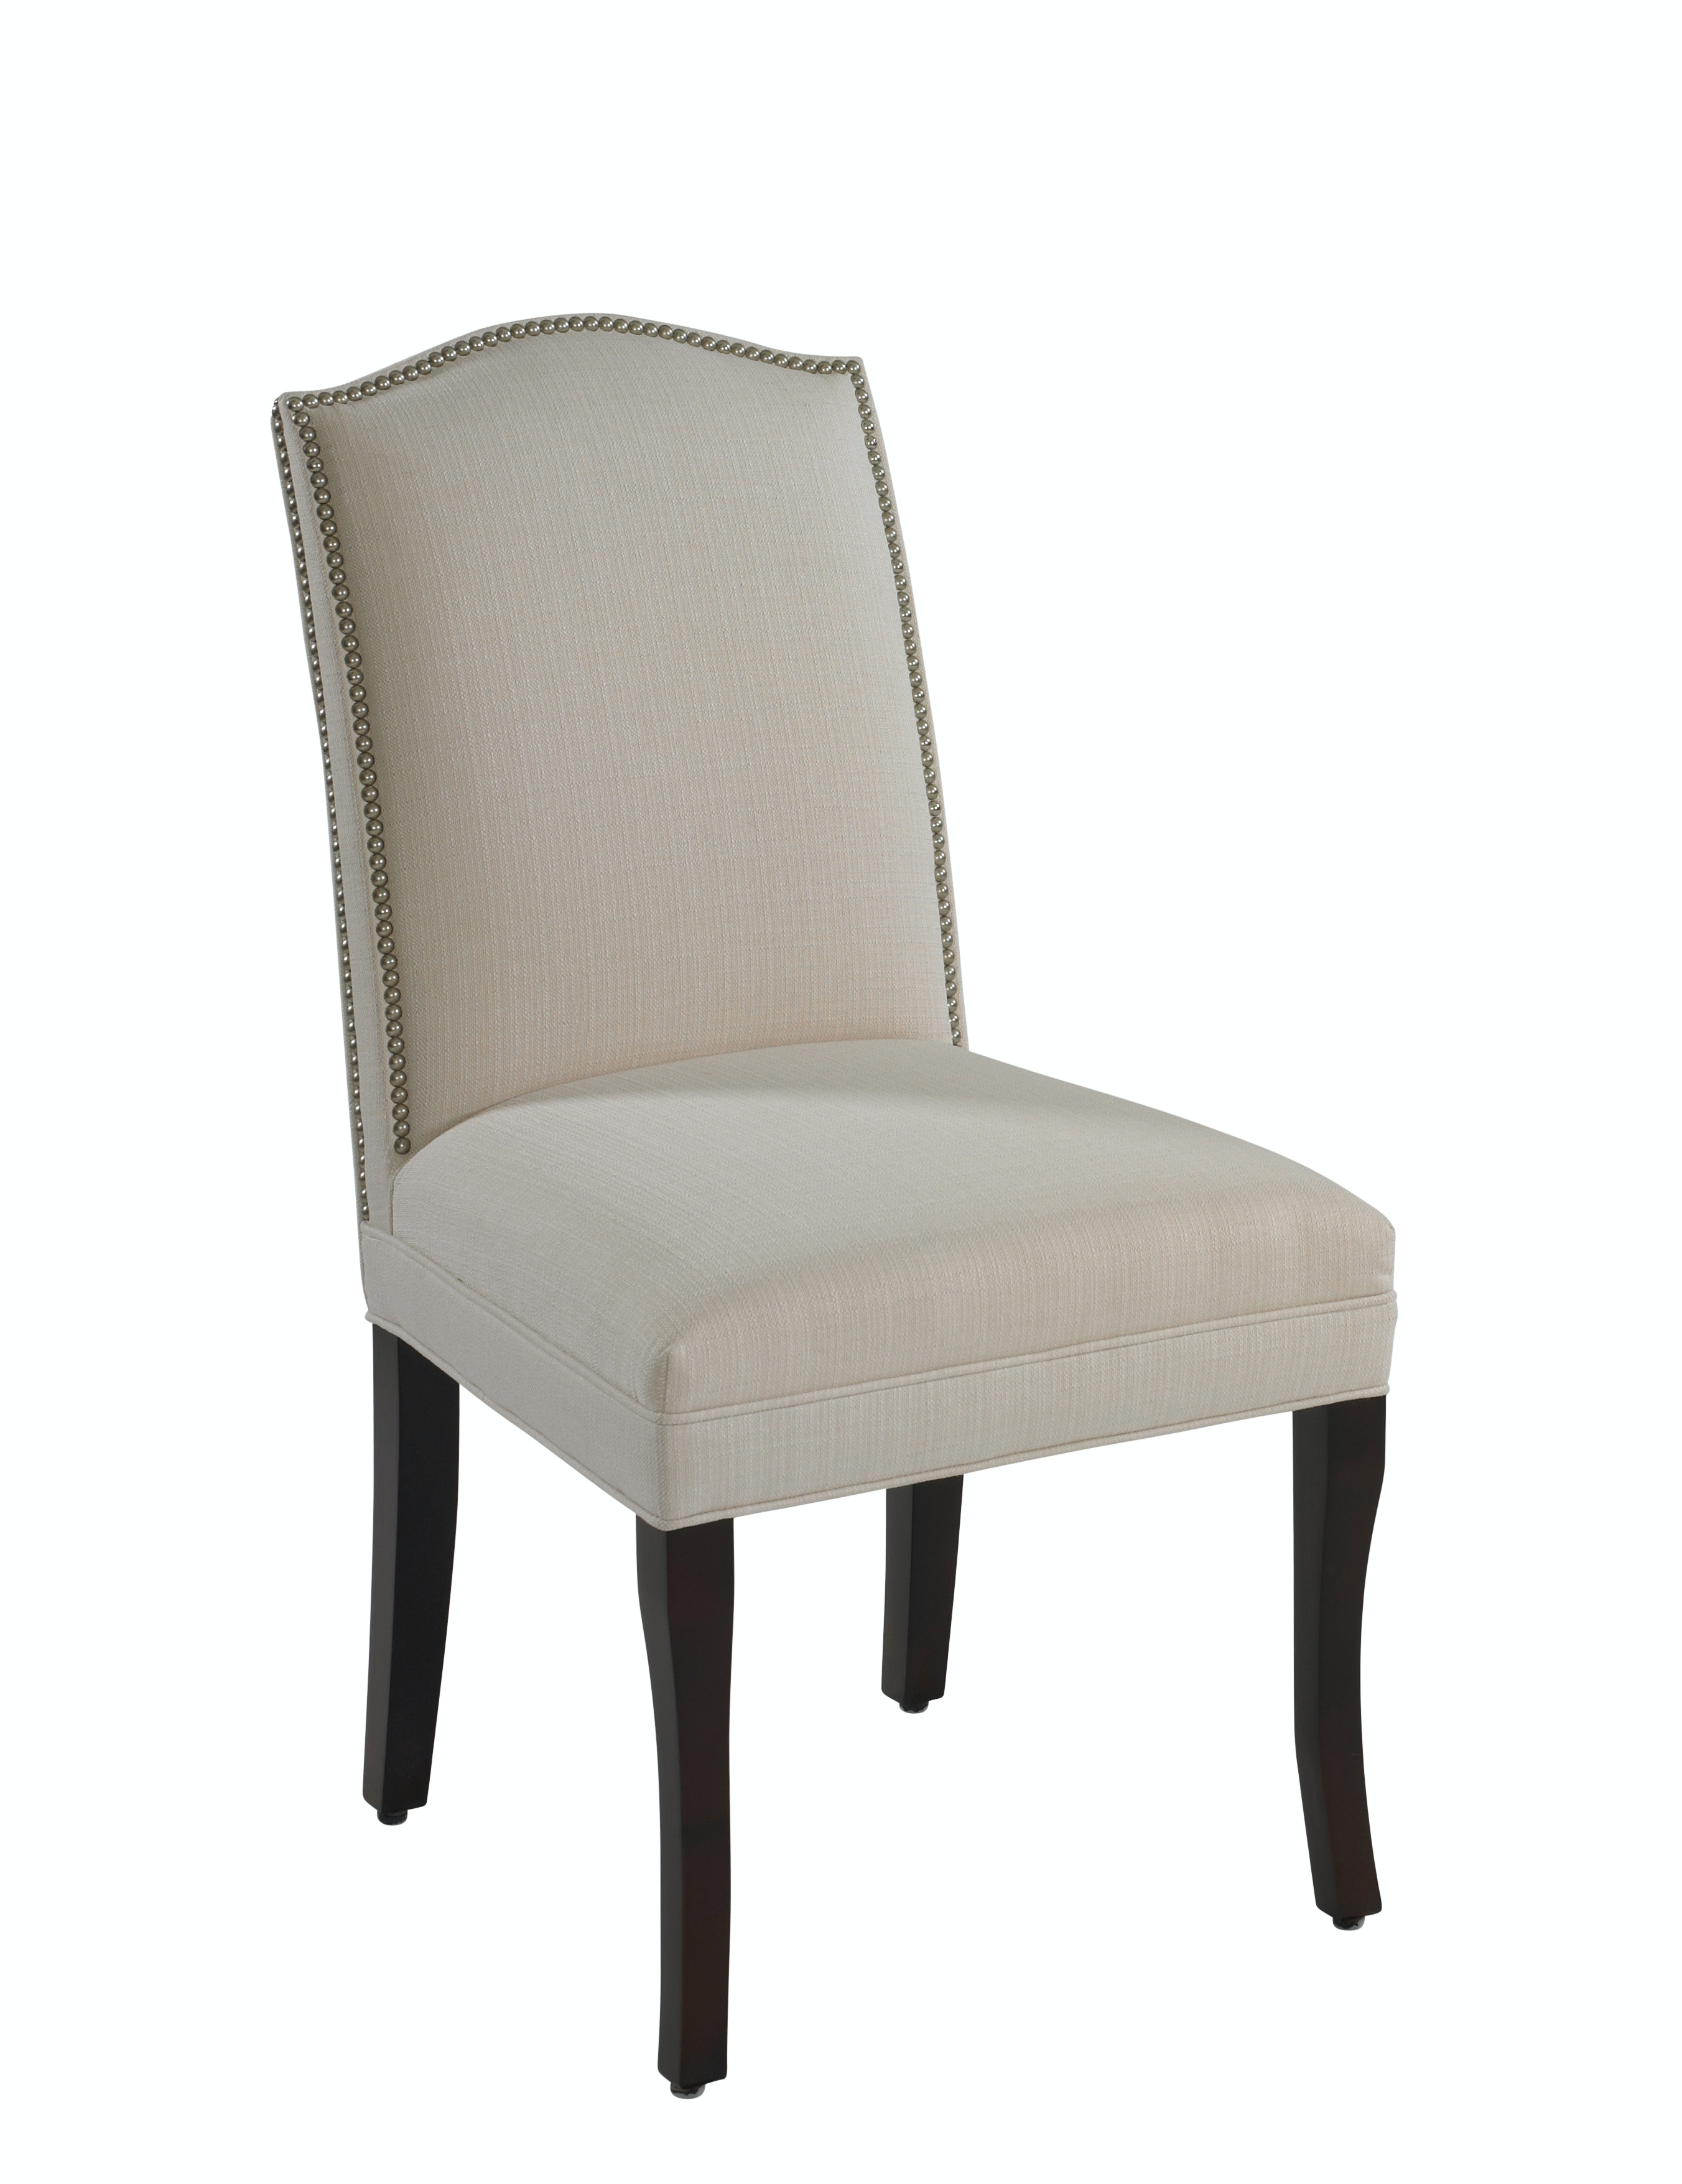 Charmant Designmaster Dining Room Lynchburg Side Chair 01 434 At IMI Furniture